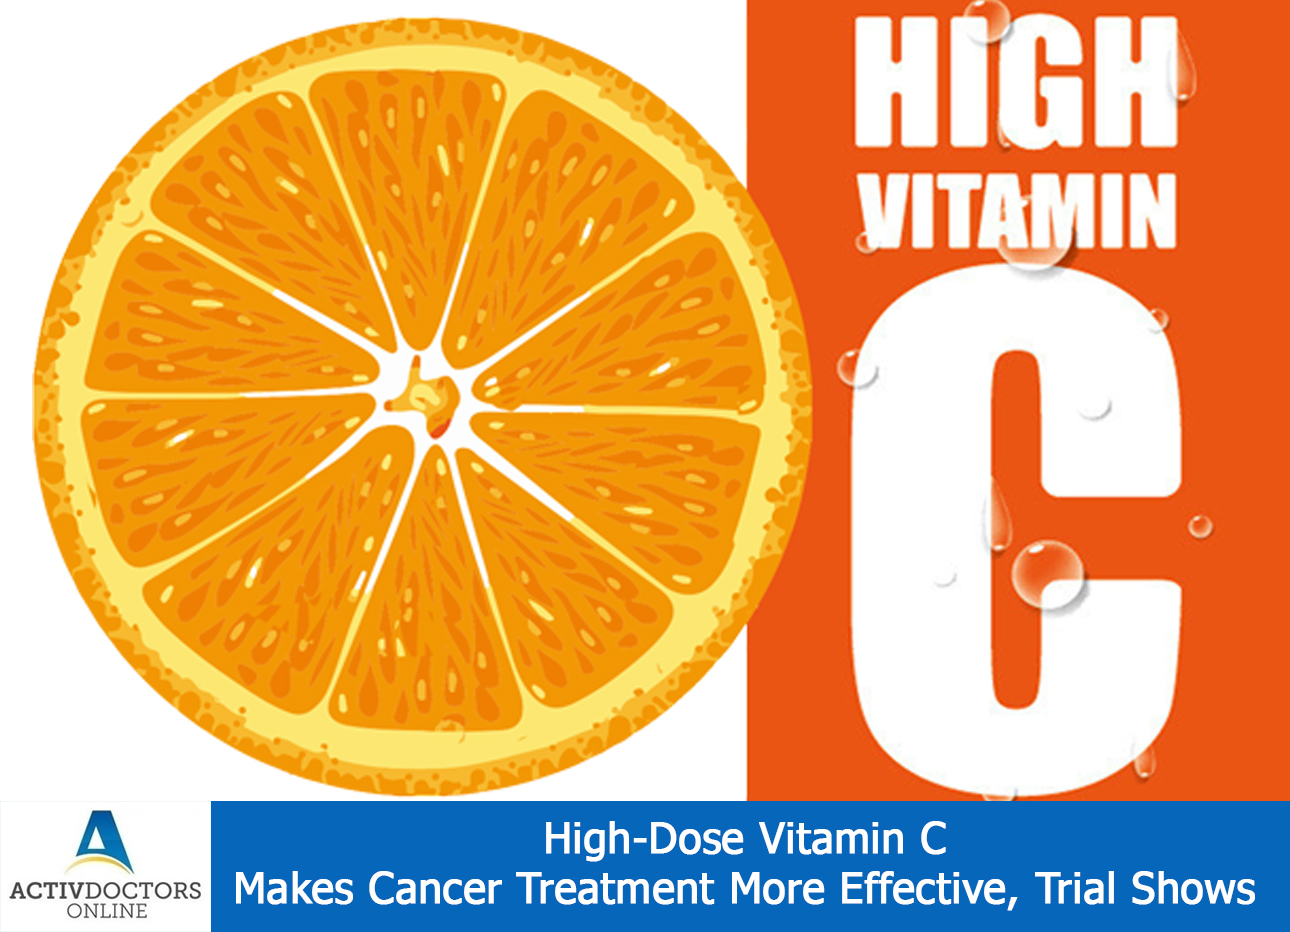 High-Dose Vitamin C Makes Cancer Treatment More Effective, Trial Shows